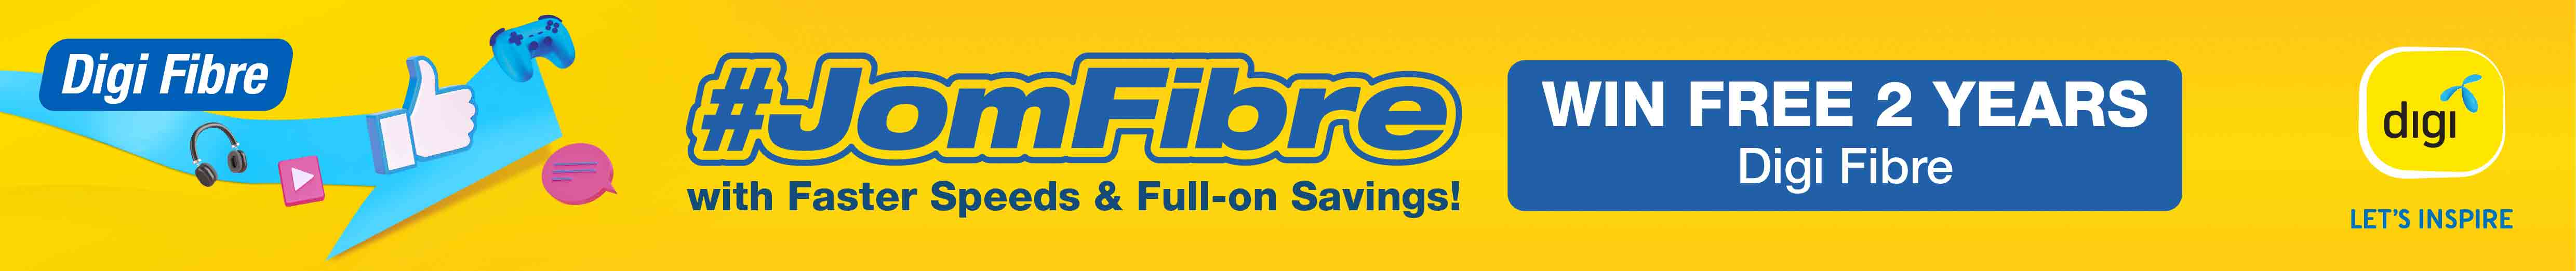 #JomFibre with faster speeds and full on savings